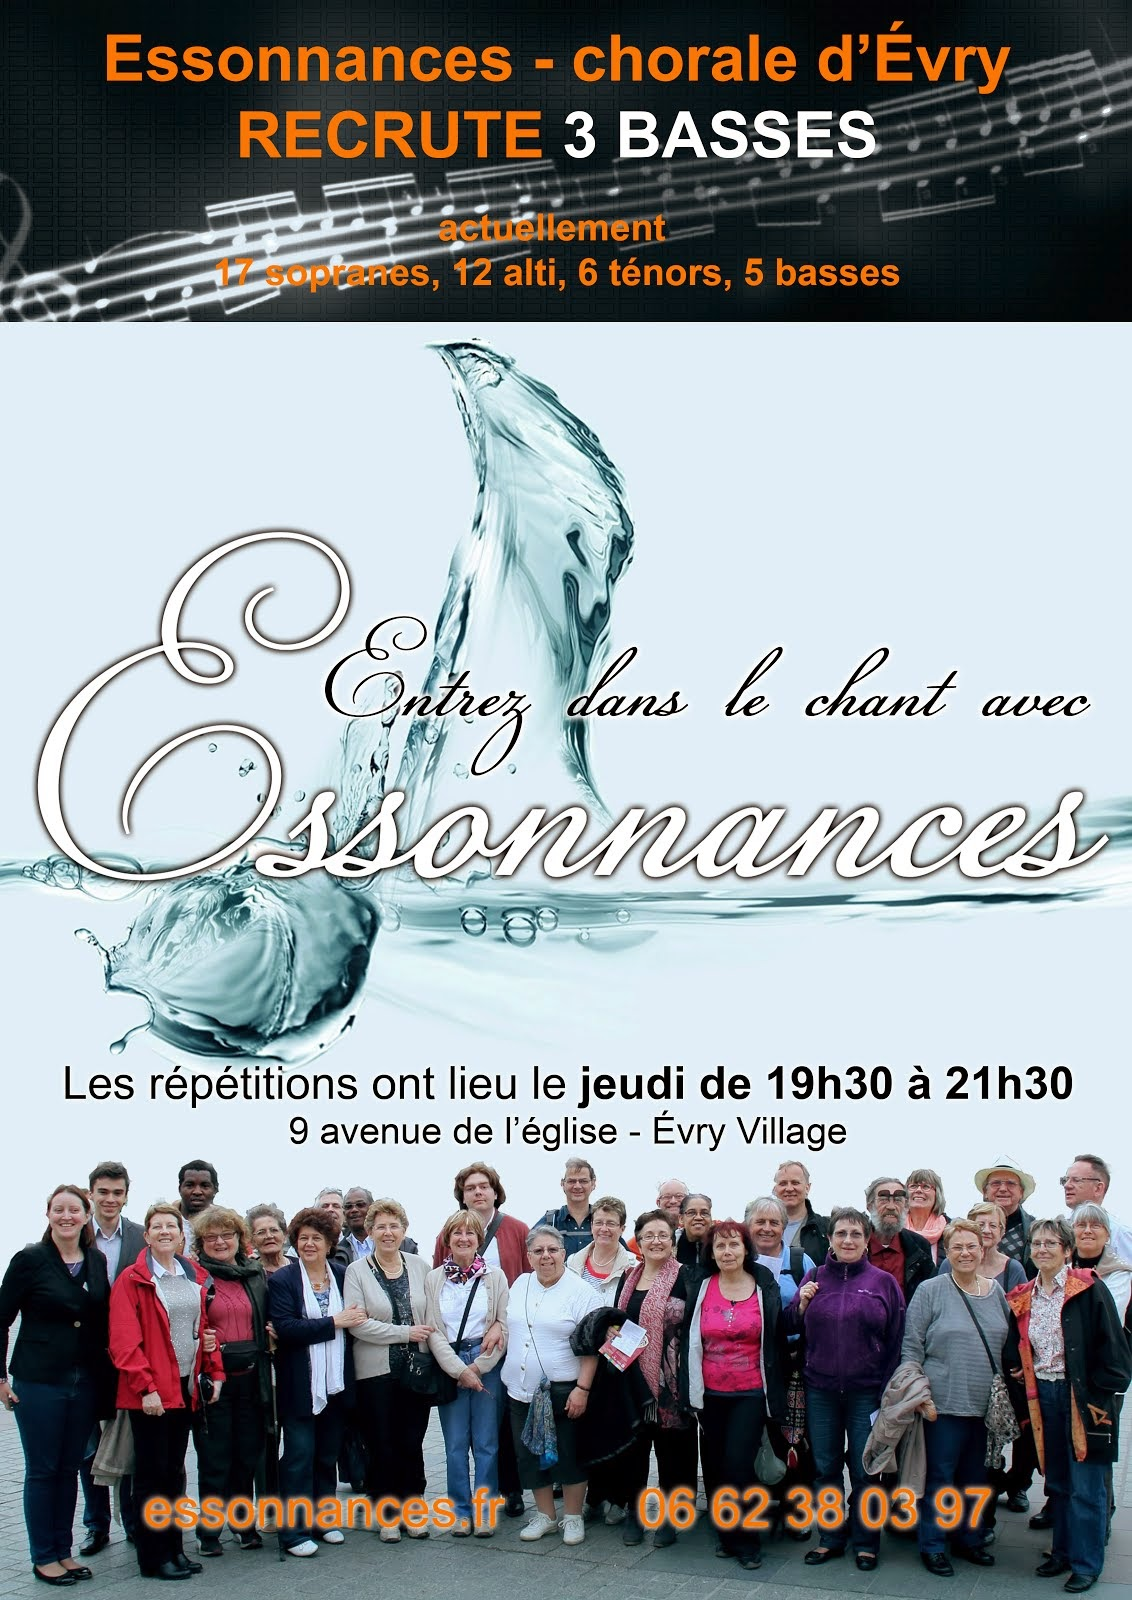 On recrute des basses